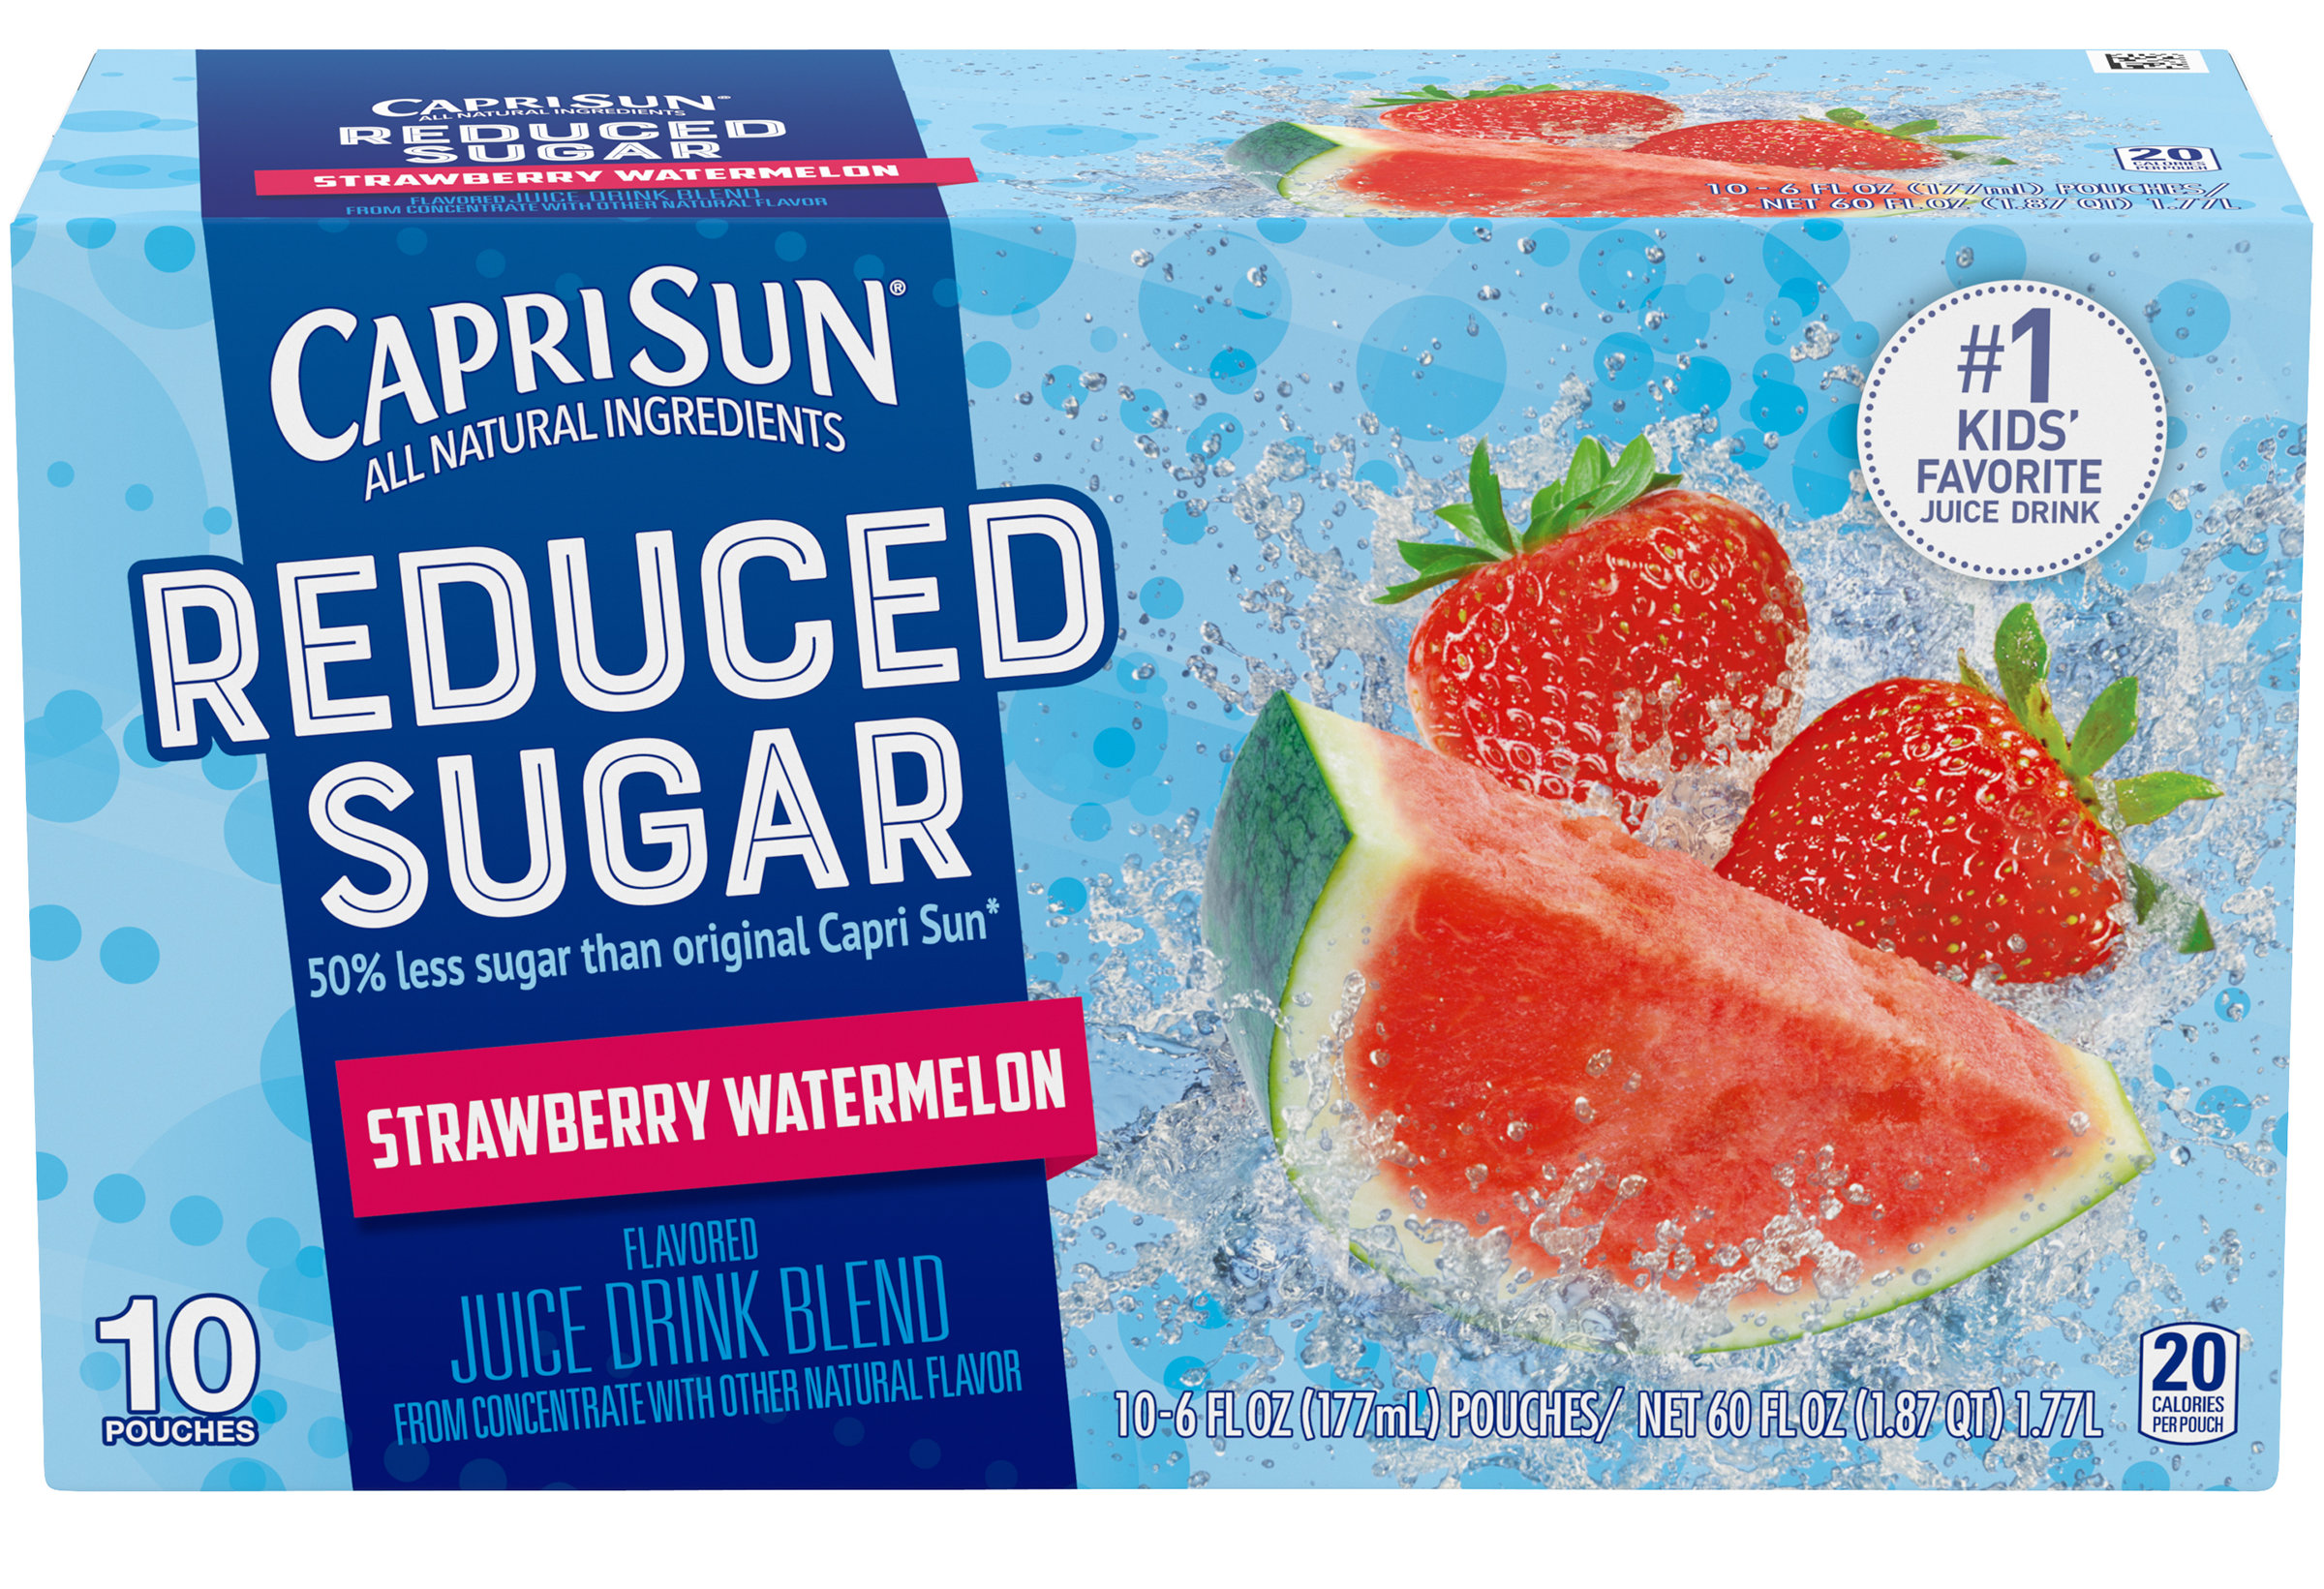 Capri Sun reduced sugar